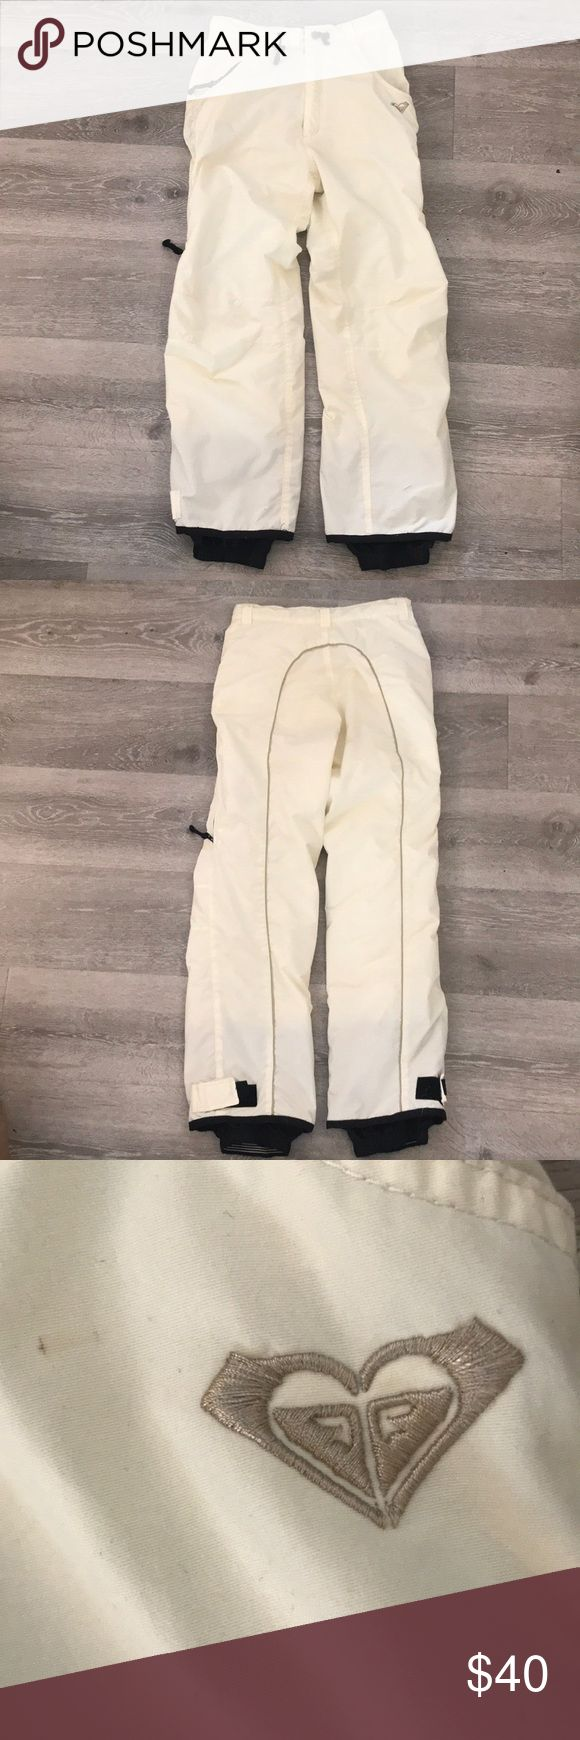 Roxy by Quiksilver Womens Snowboard & ski pants Good condition, well loved, Roxy…